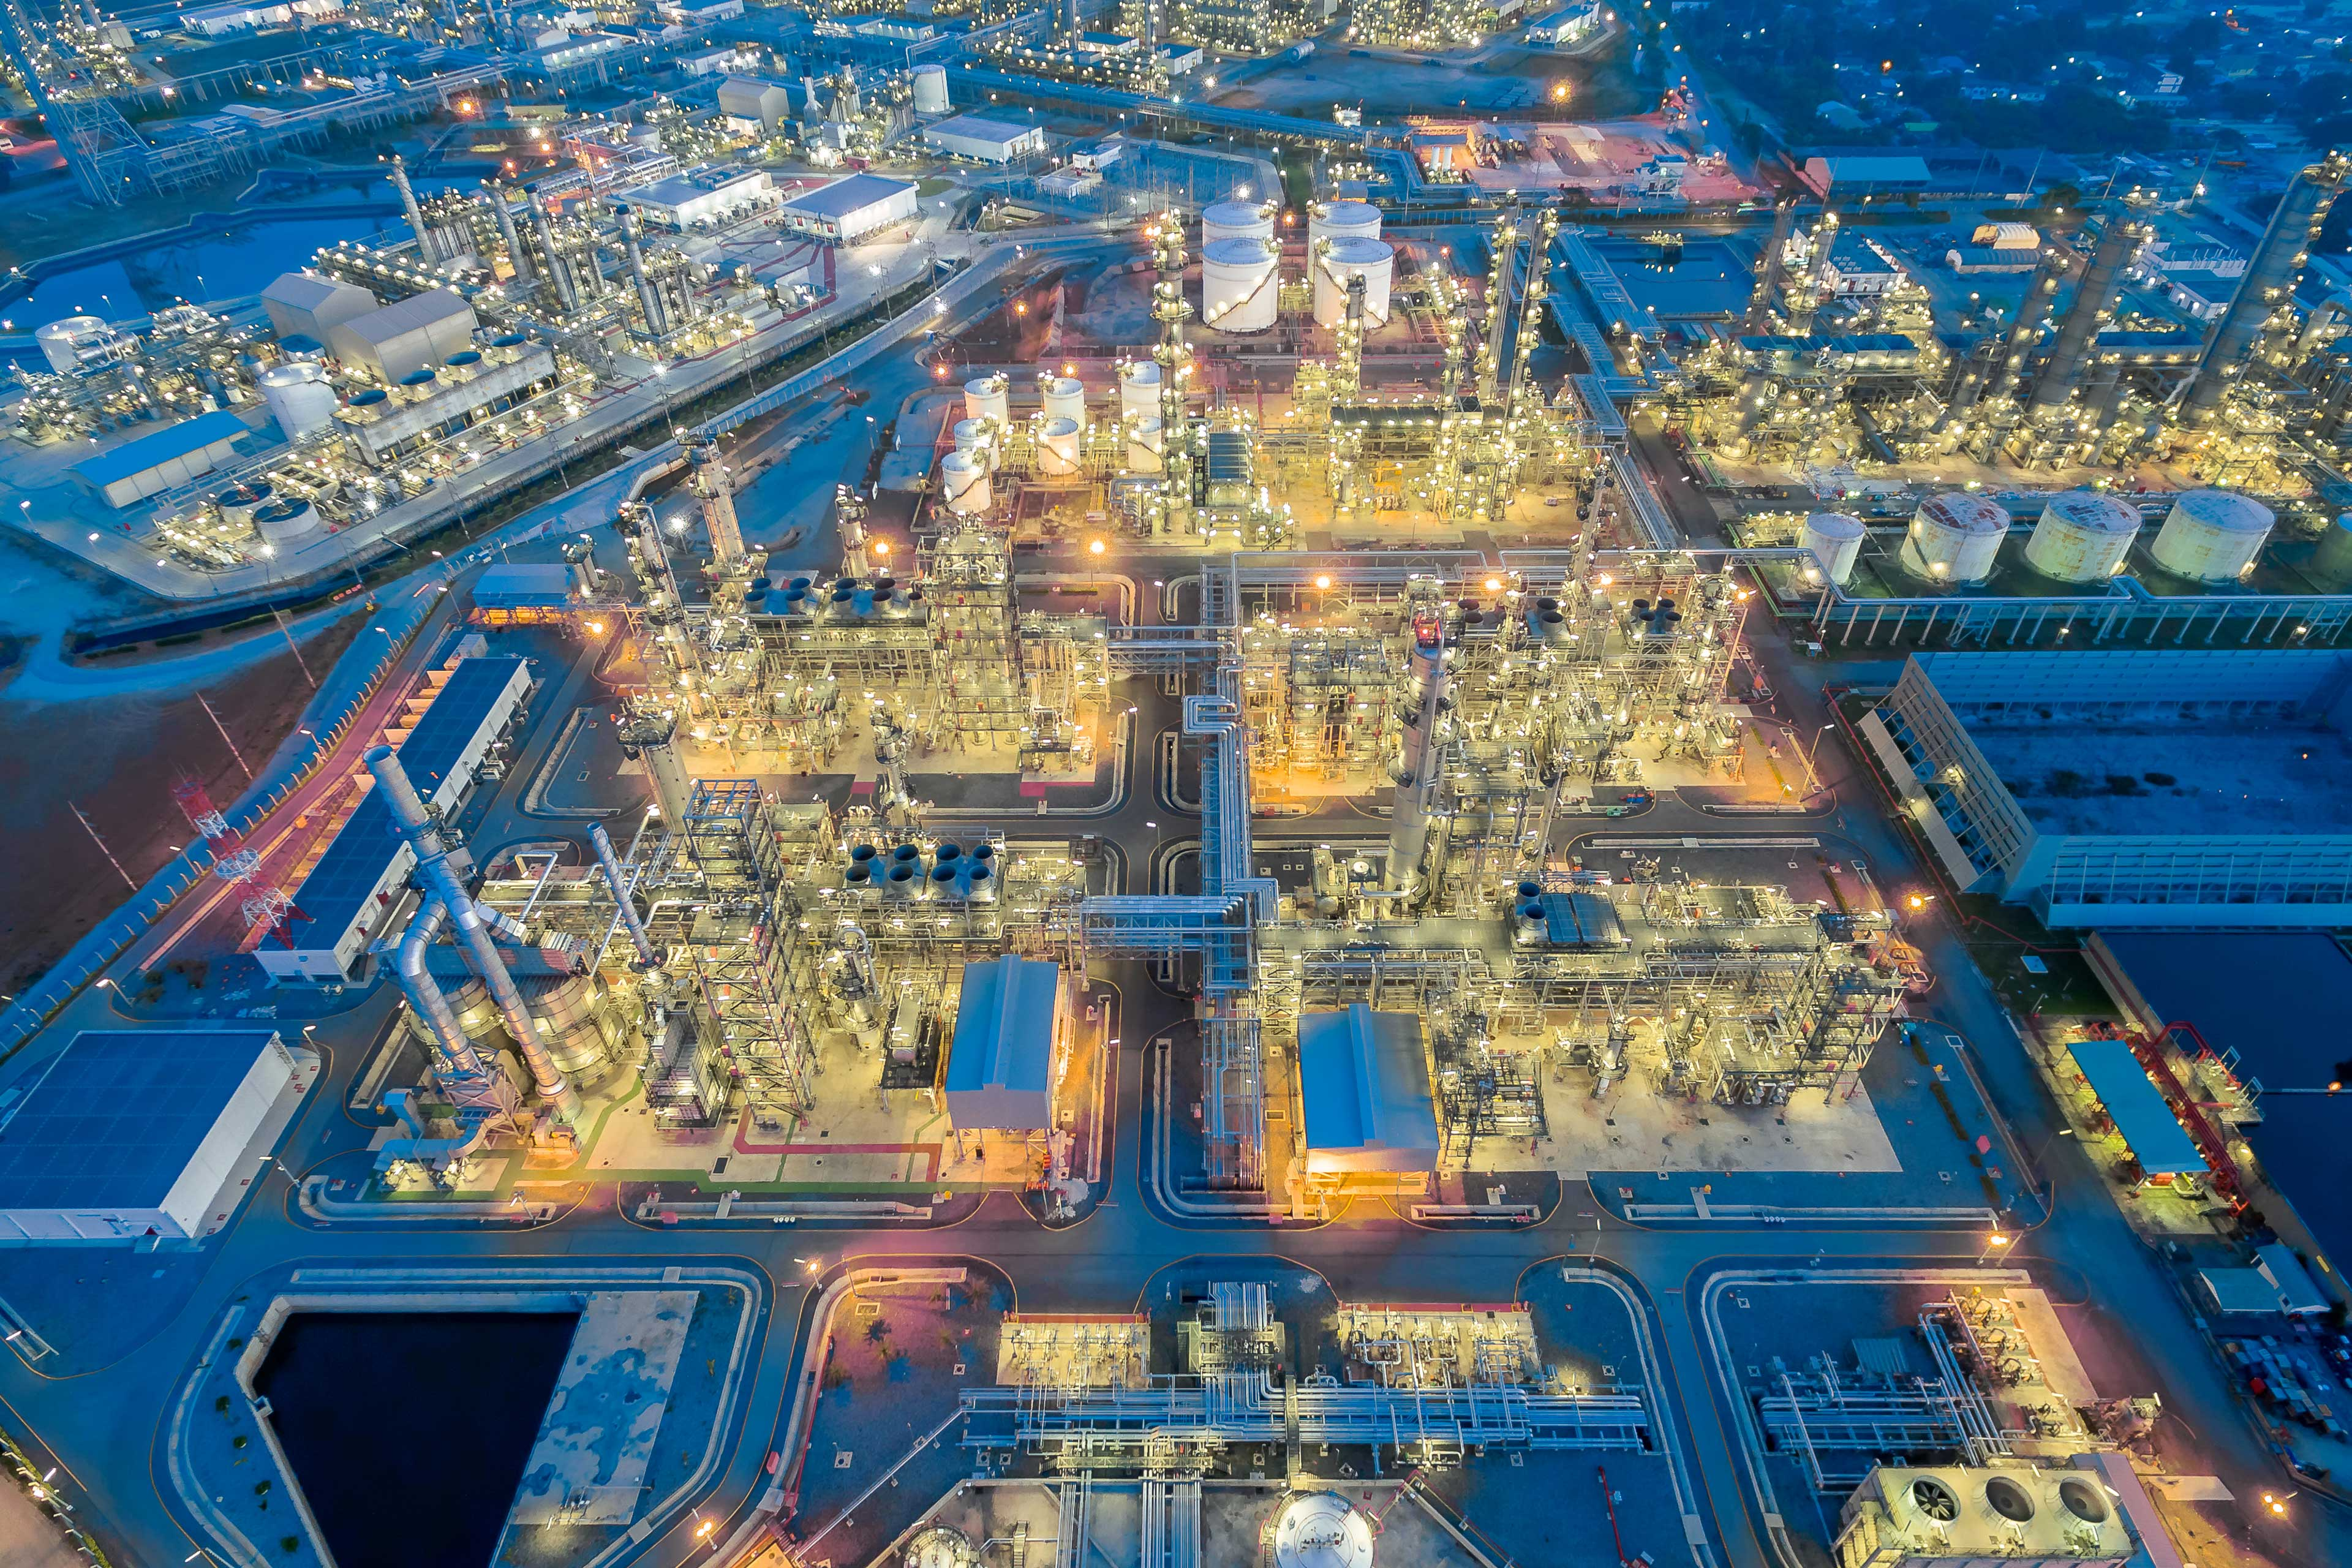 EY - Oil refinery at night, Thailand